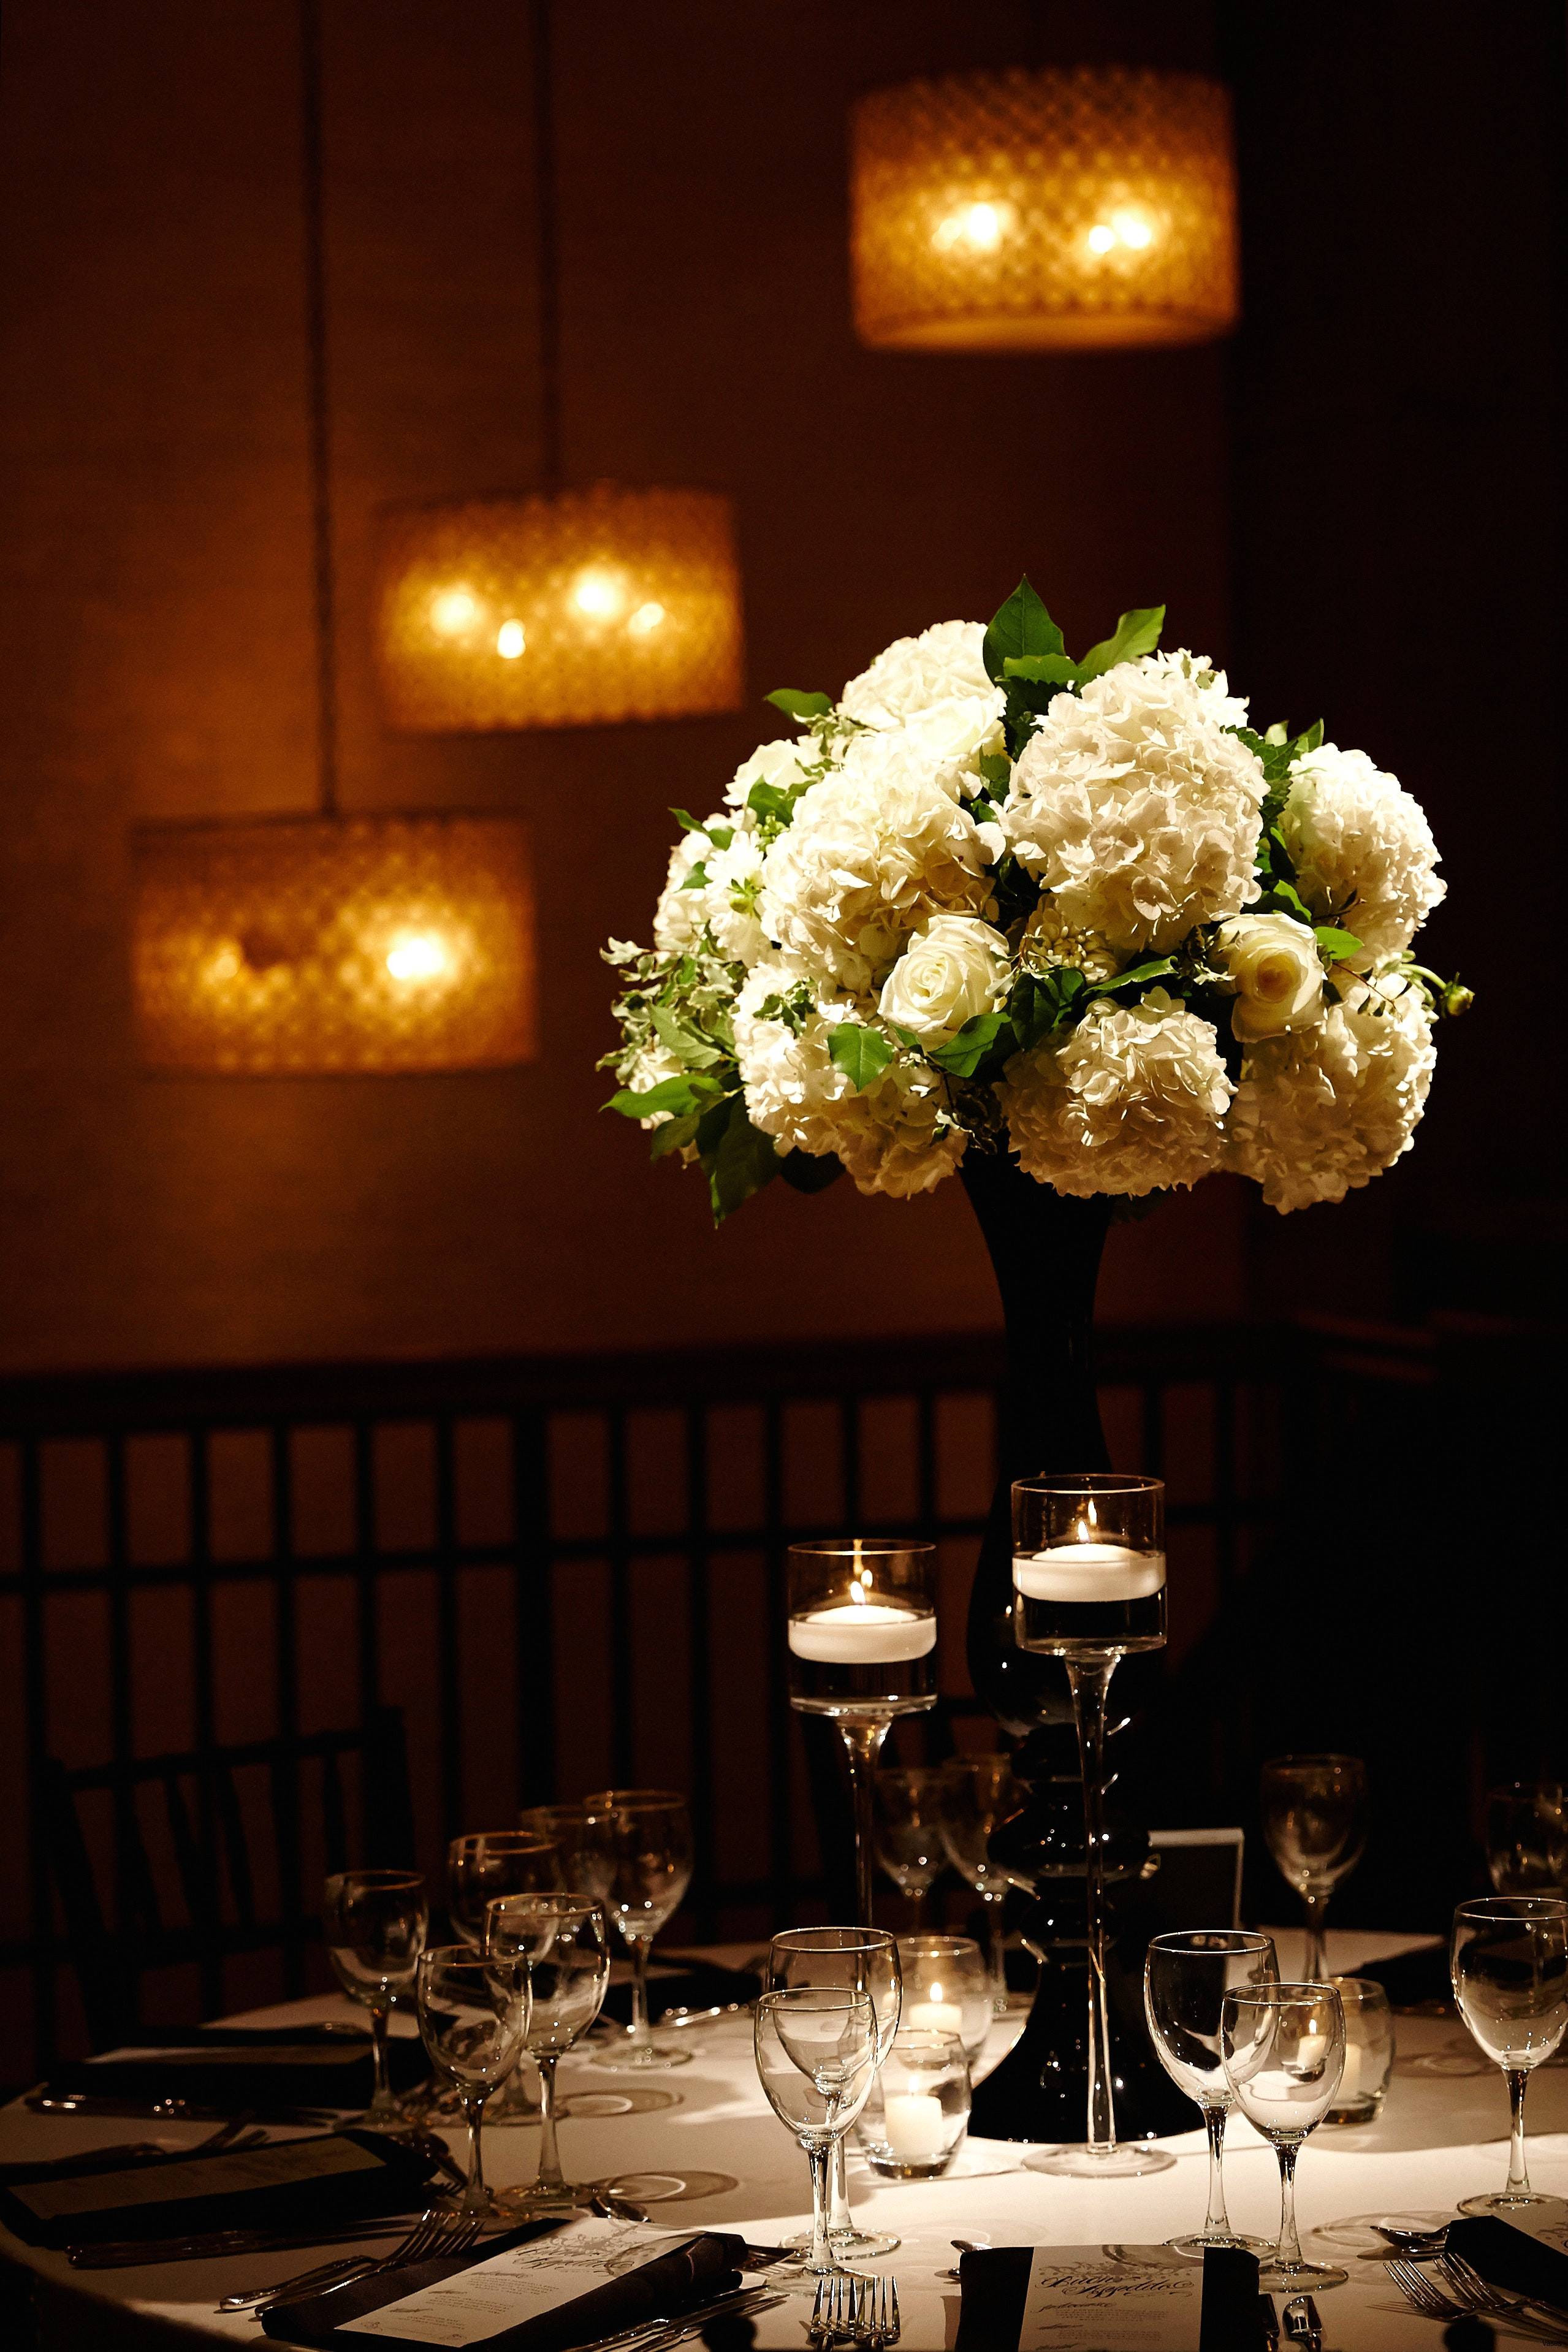 tall pedestal vase of wedding centerpiece with lights greatest il fullxfull h vases black intended for wedding centerpiece with lights greatest il fullxfull h vases black vase white flowers zoomi 0d with